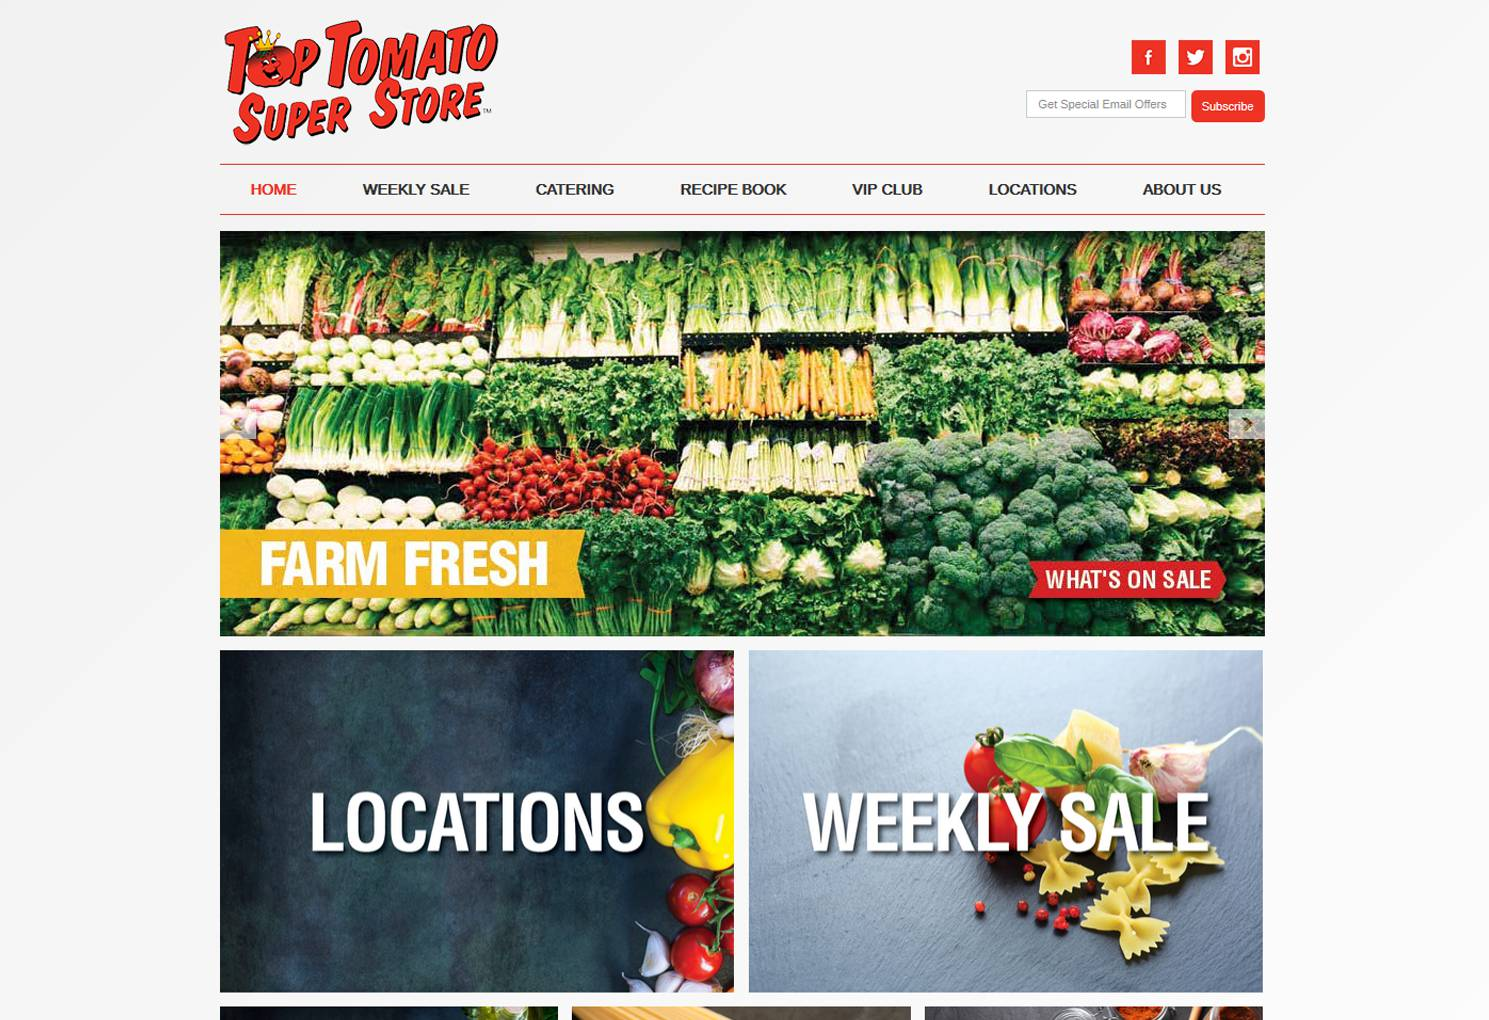 Top Tomato Superstore